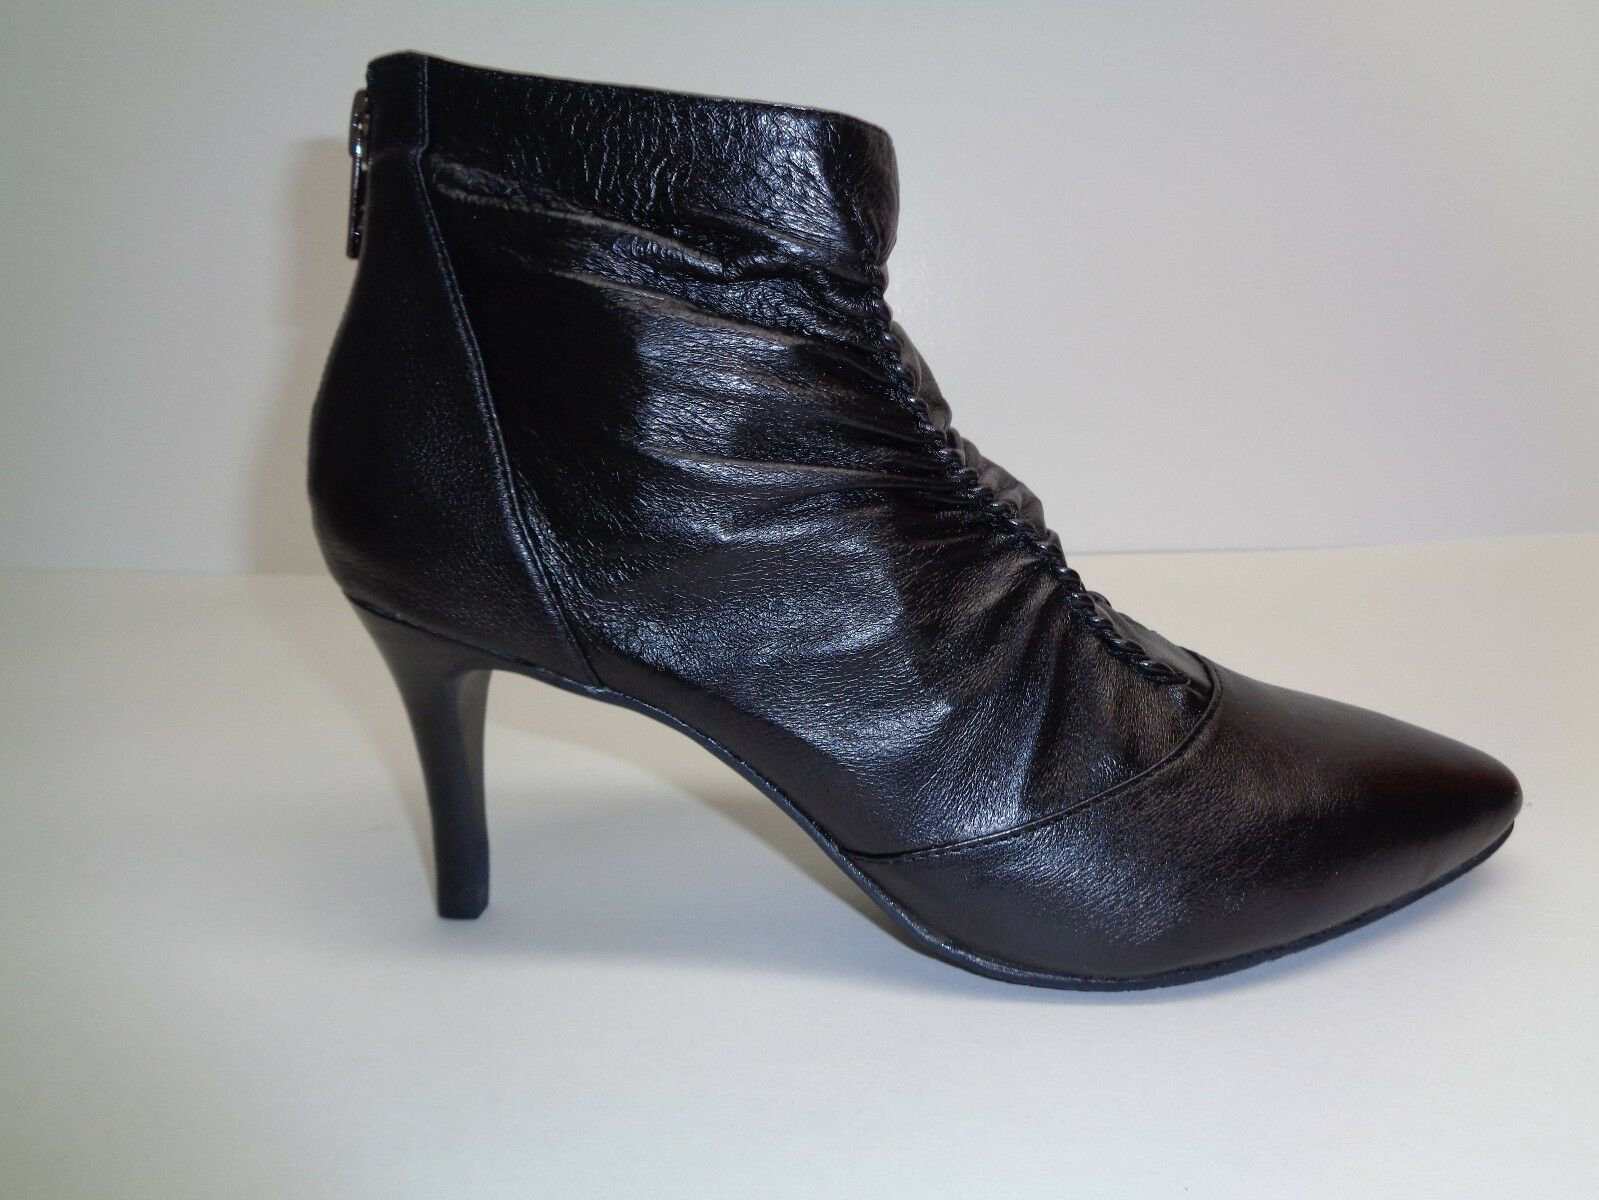 Adrianna Papell Size 8.5 M NIKKI Black Leather Ankle Boots New Womens Shoes